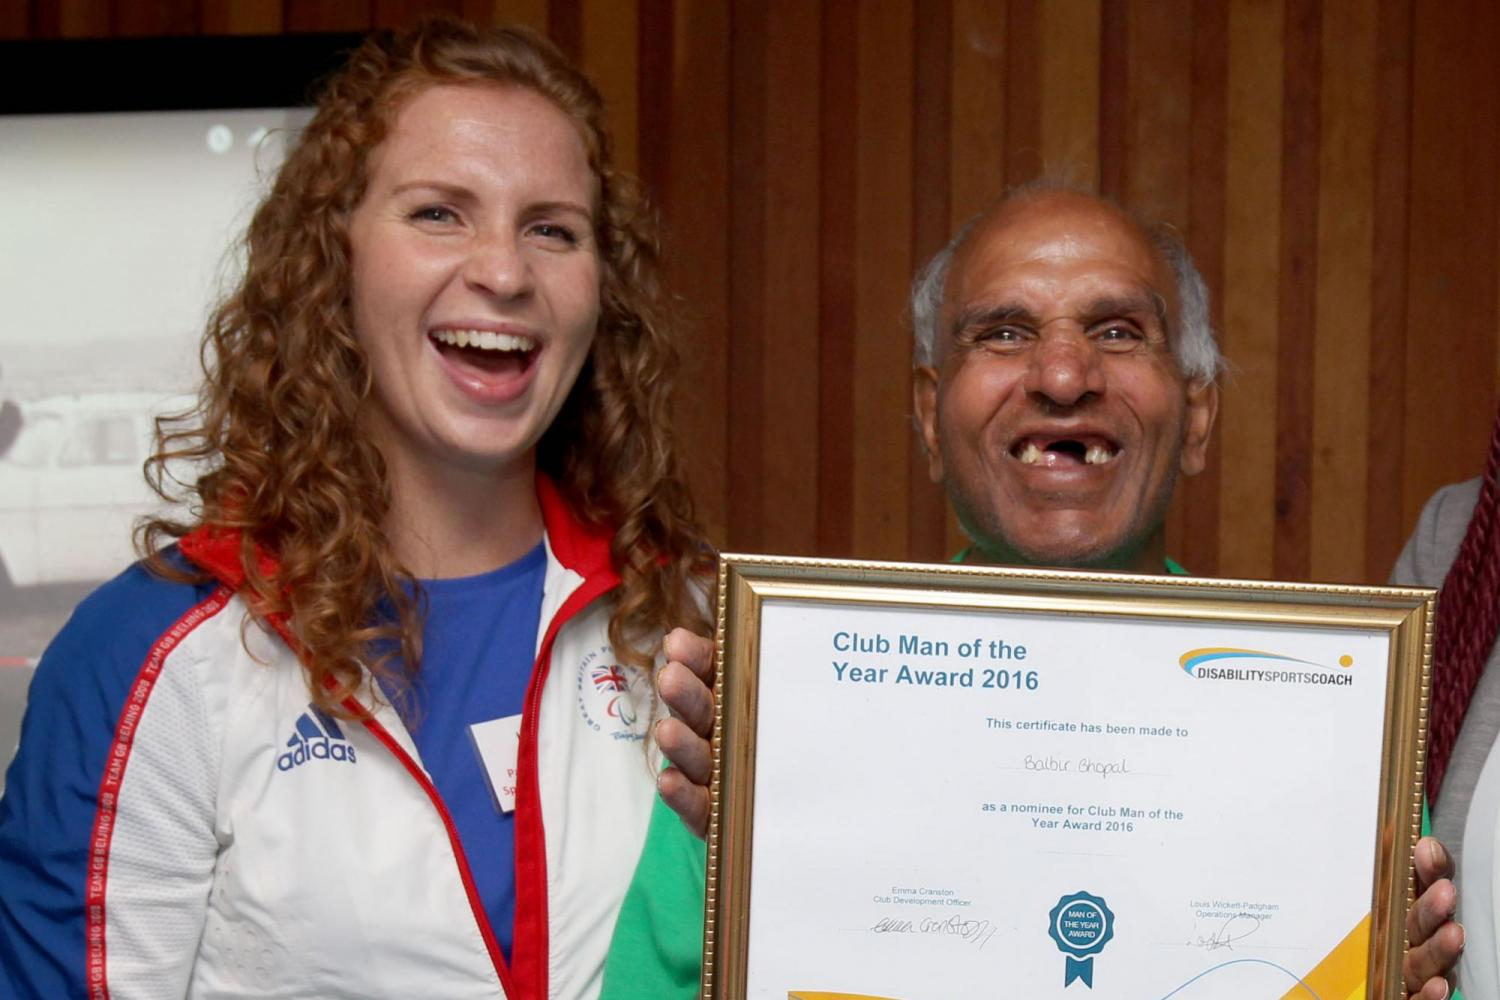 Kate Grey, former GB Paralympic Swimmer becomes Disability Sports Coach Patron